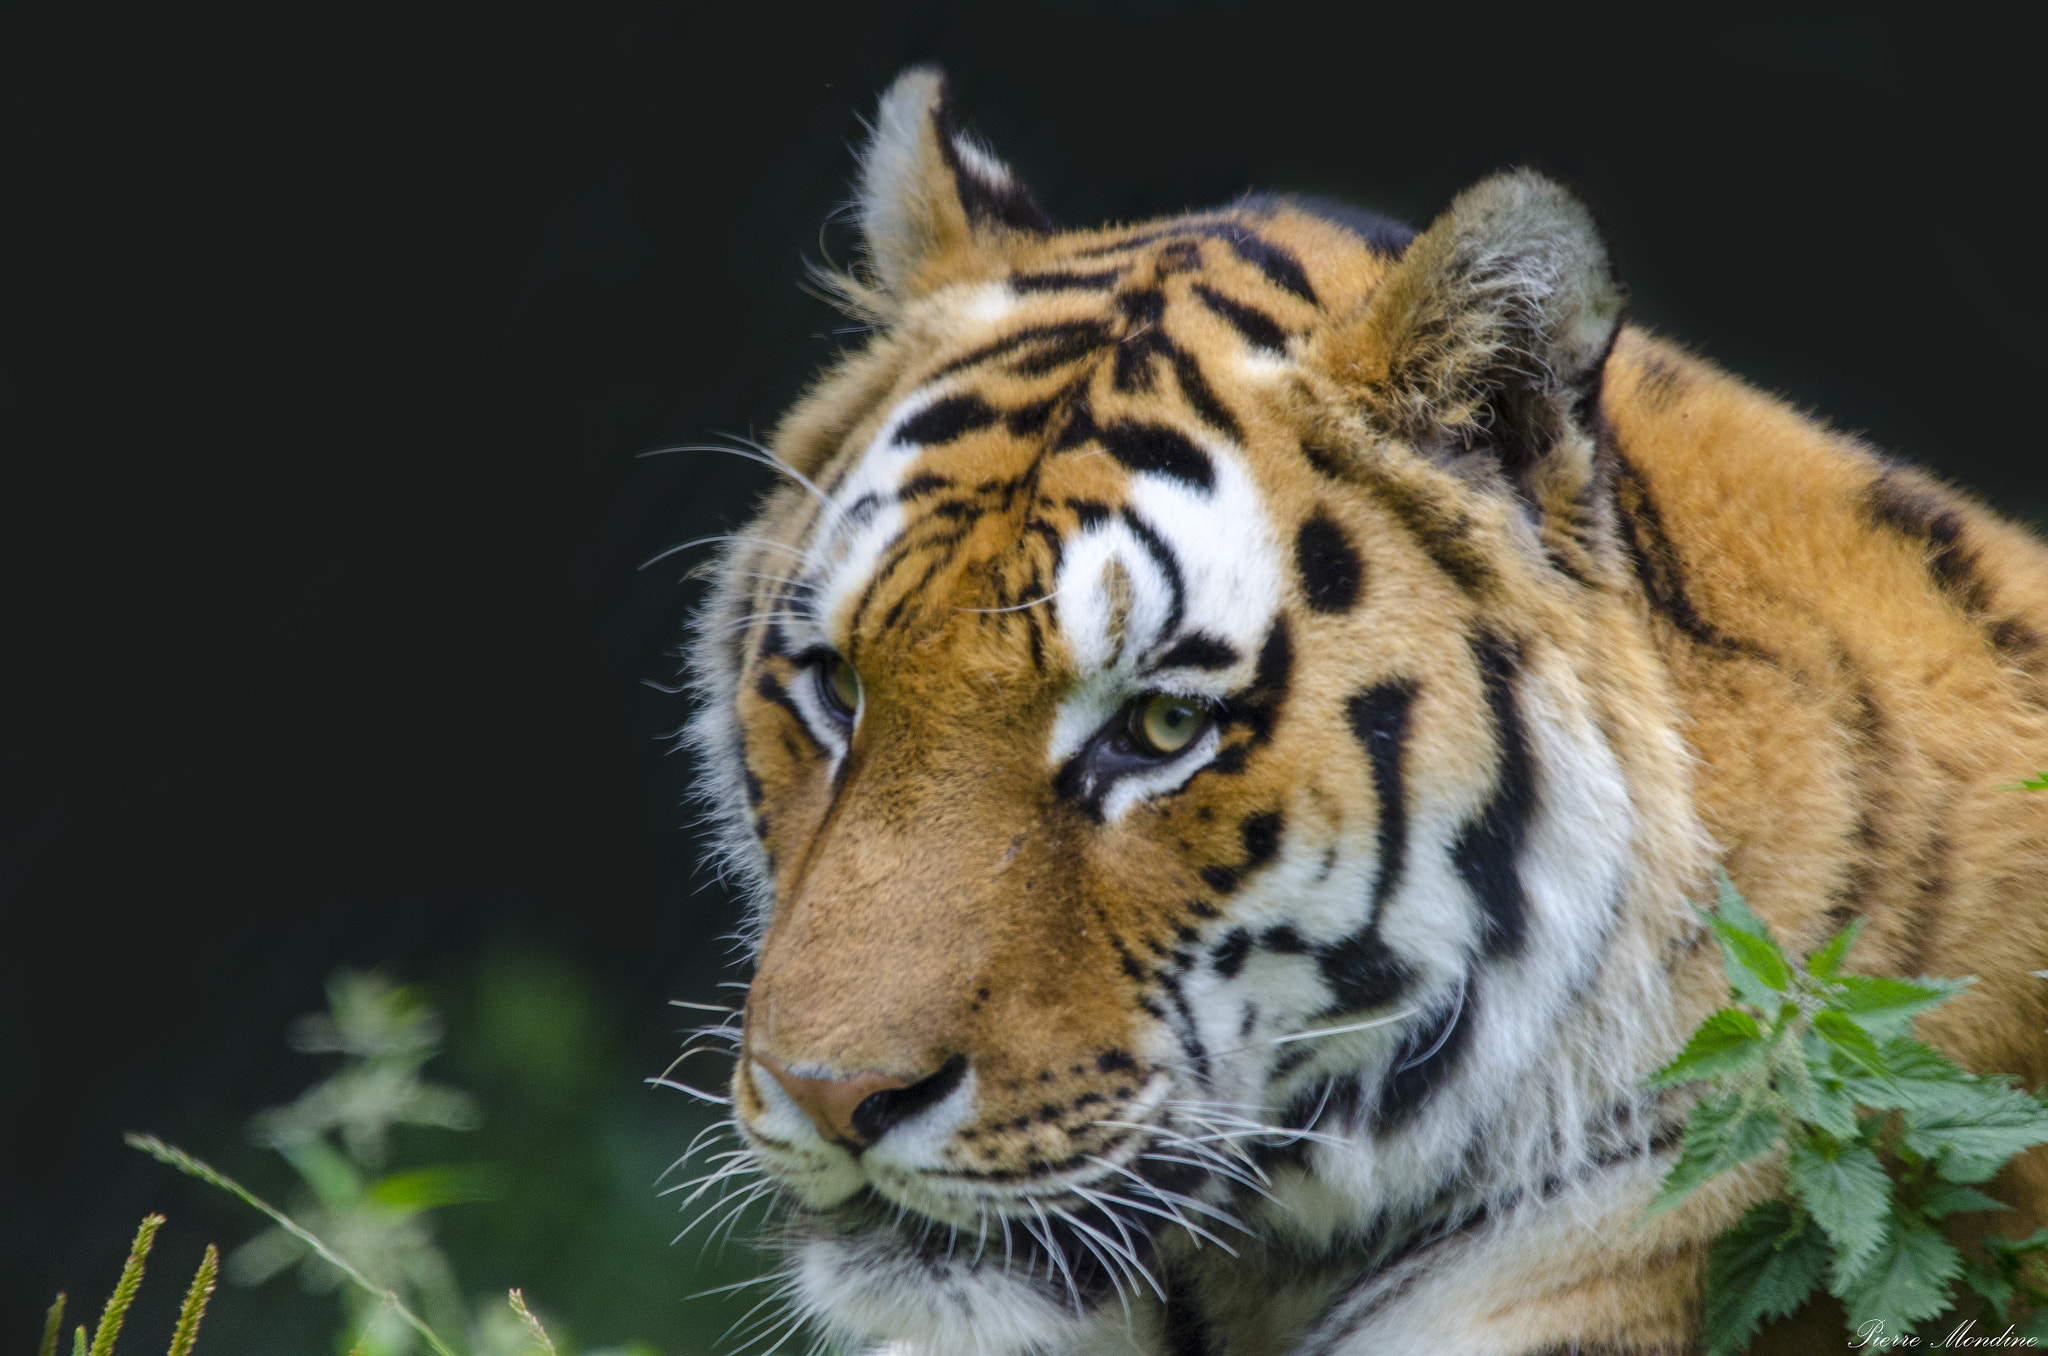 Photograph Tiger. by Pierre Mondine on 500px